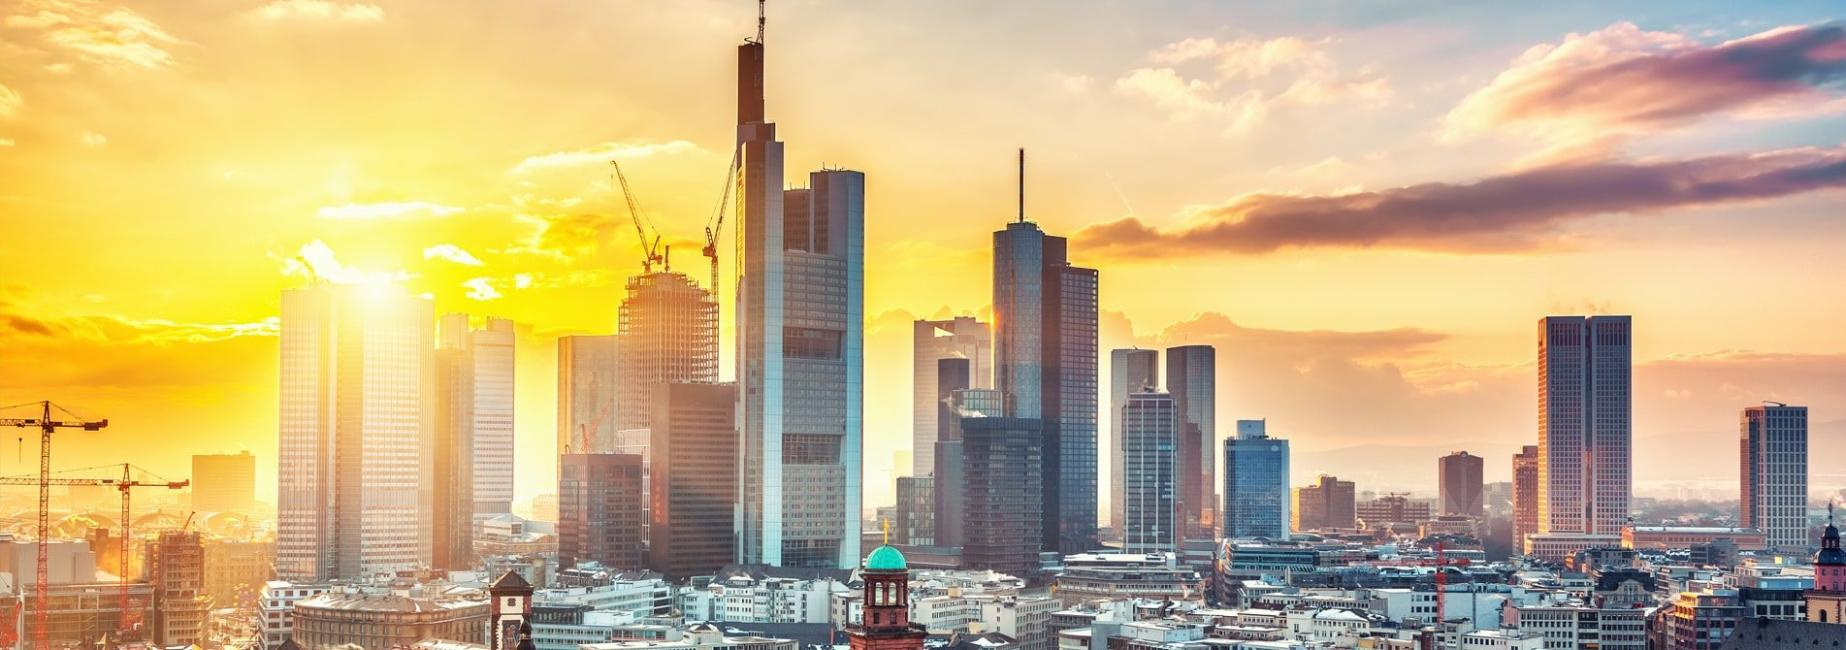 frankfurt business trip header slk he